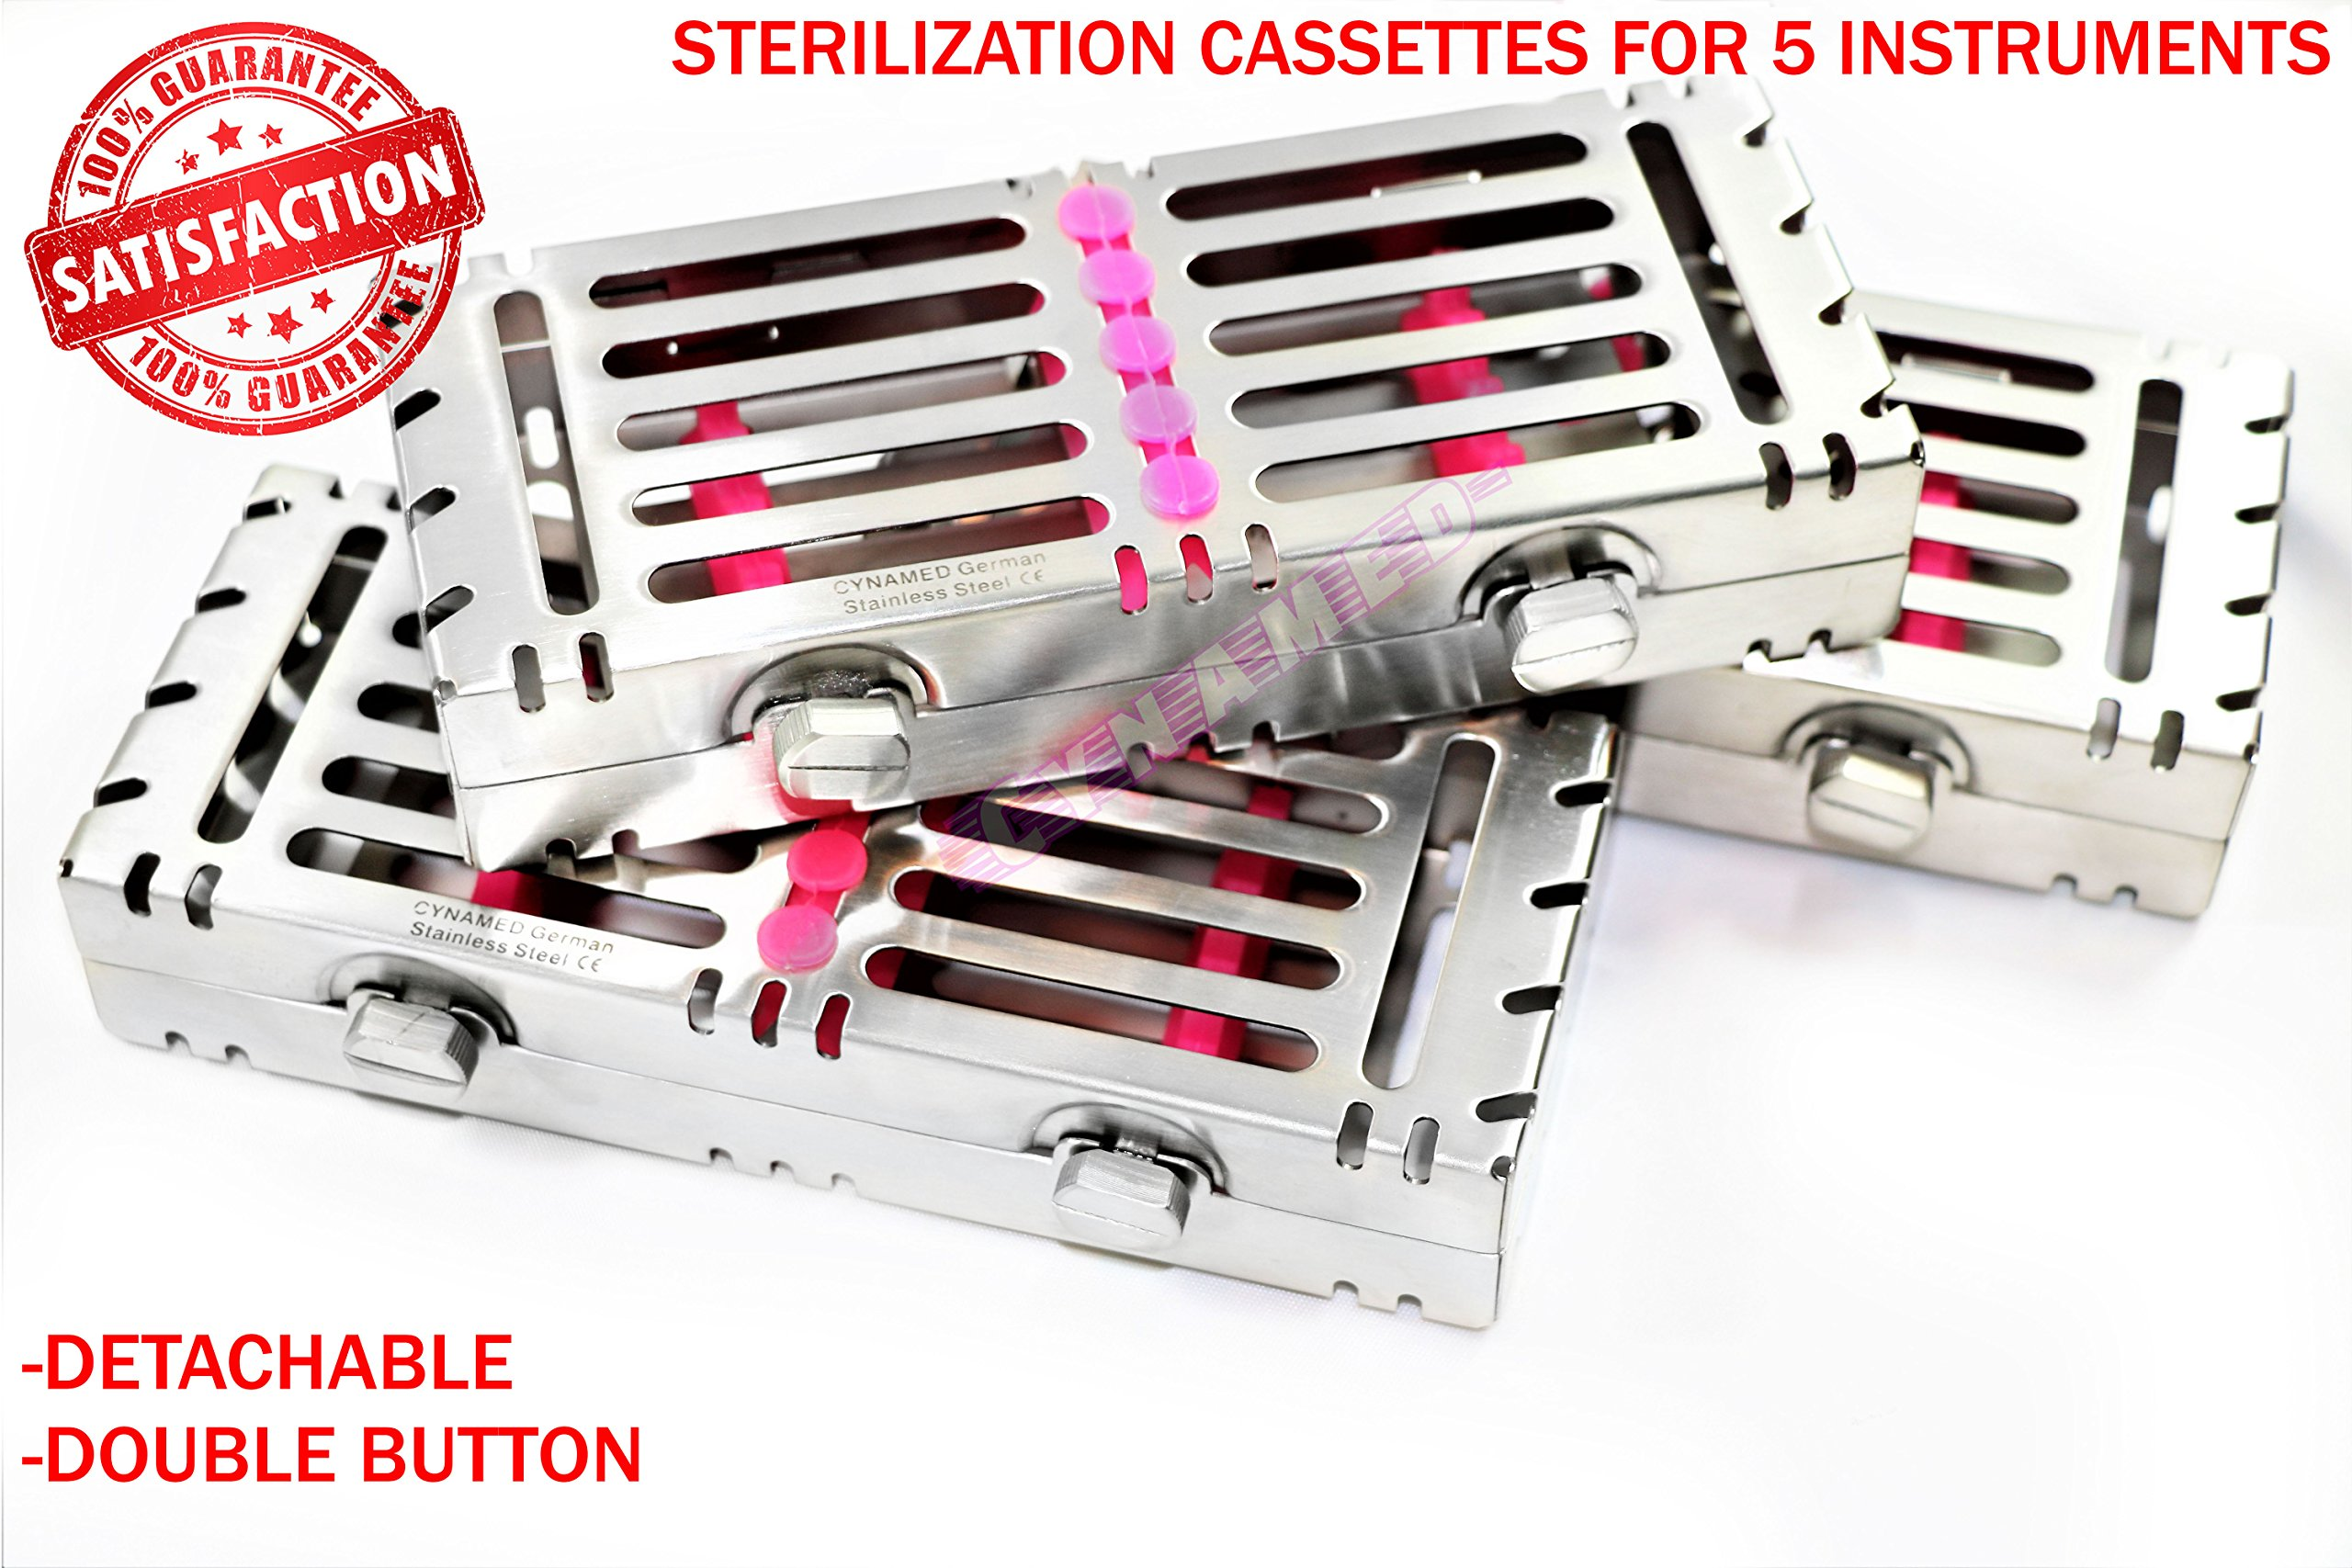 3 German Sterilization Boxes for 5 Instruments with Double Button Detachable CYNAMED